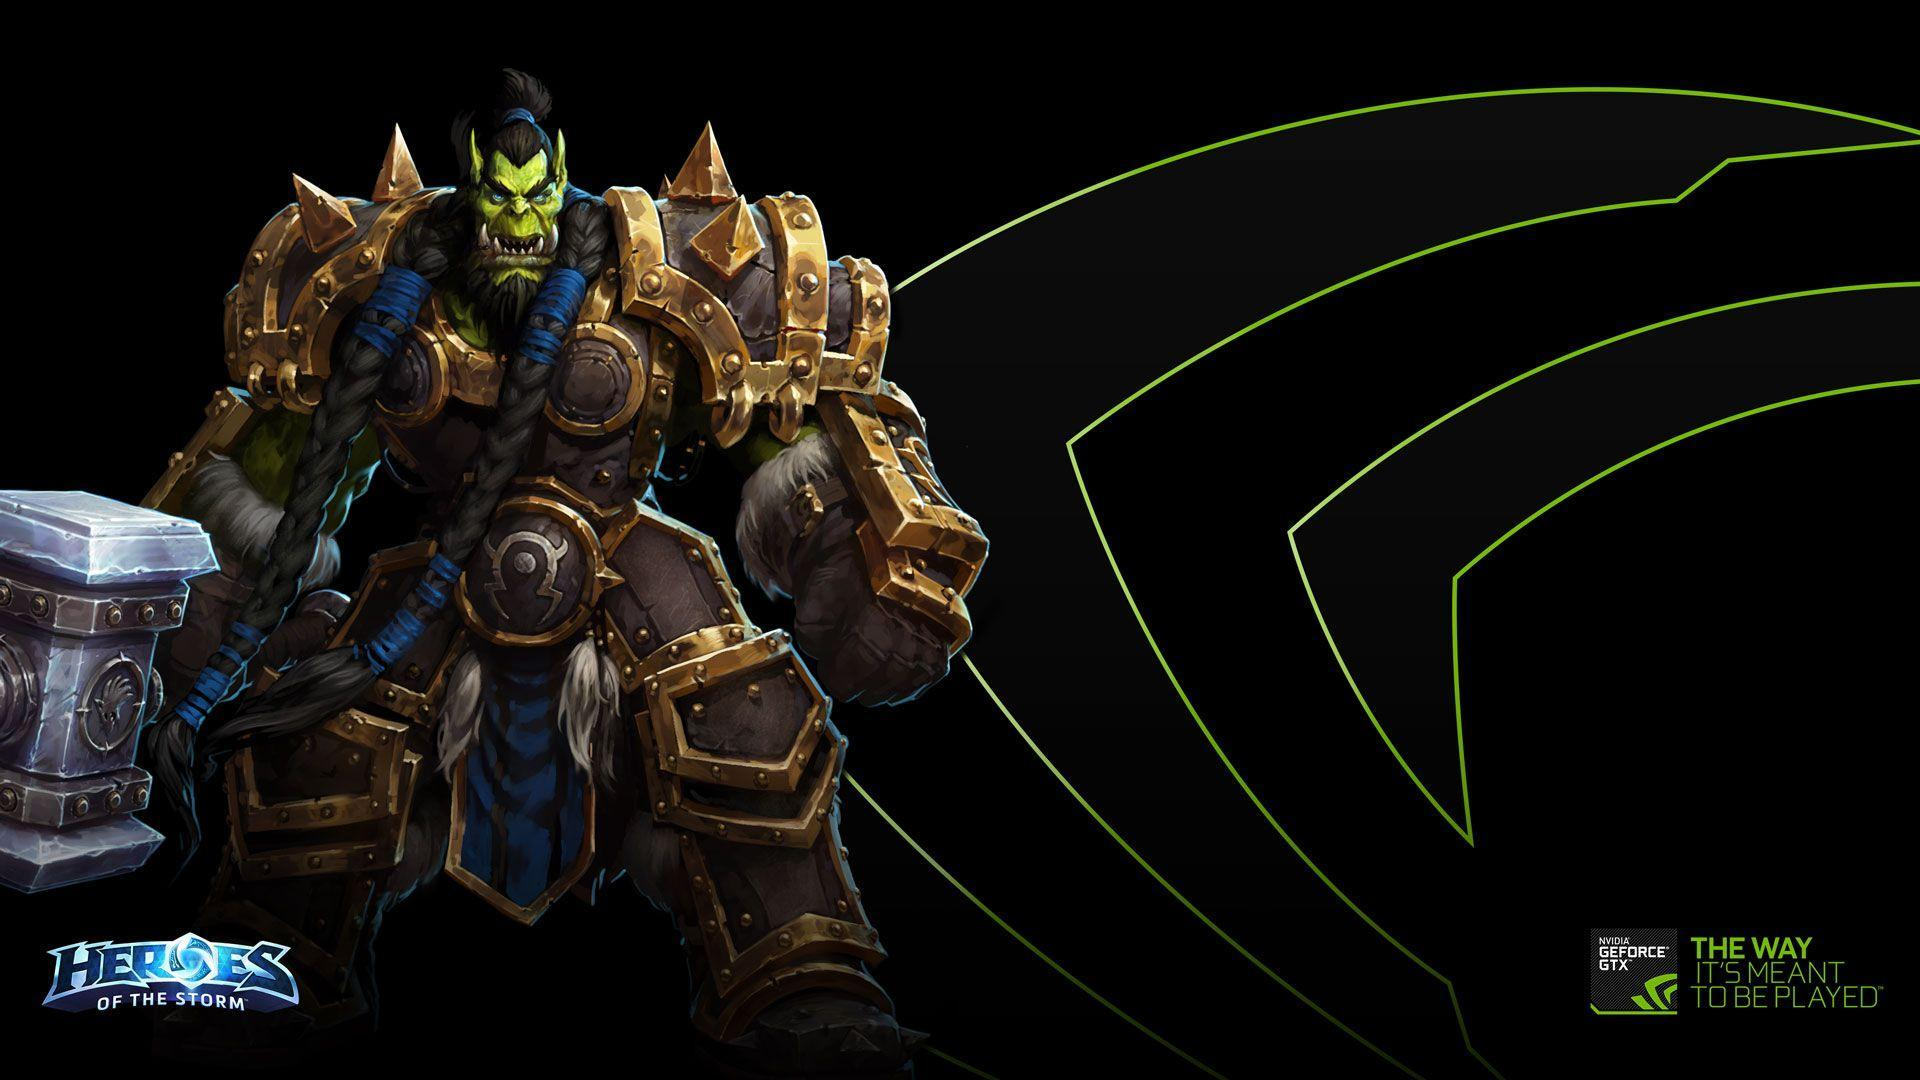 Heroes Of The Storm Wallpapers Wallpaper Cave